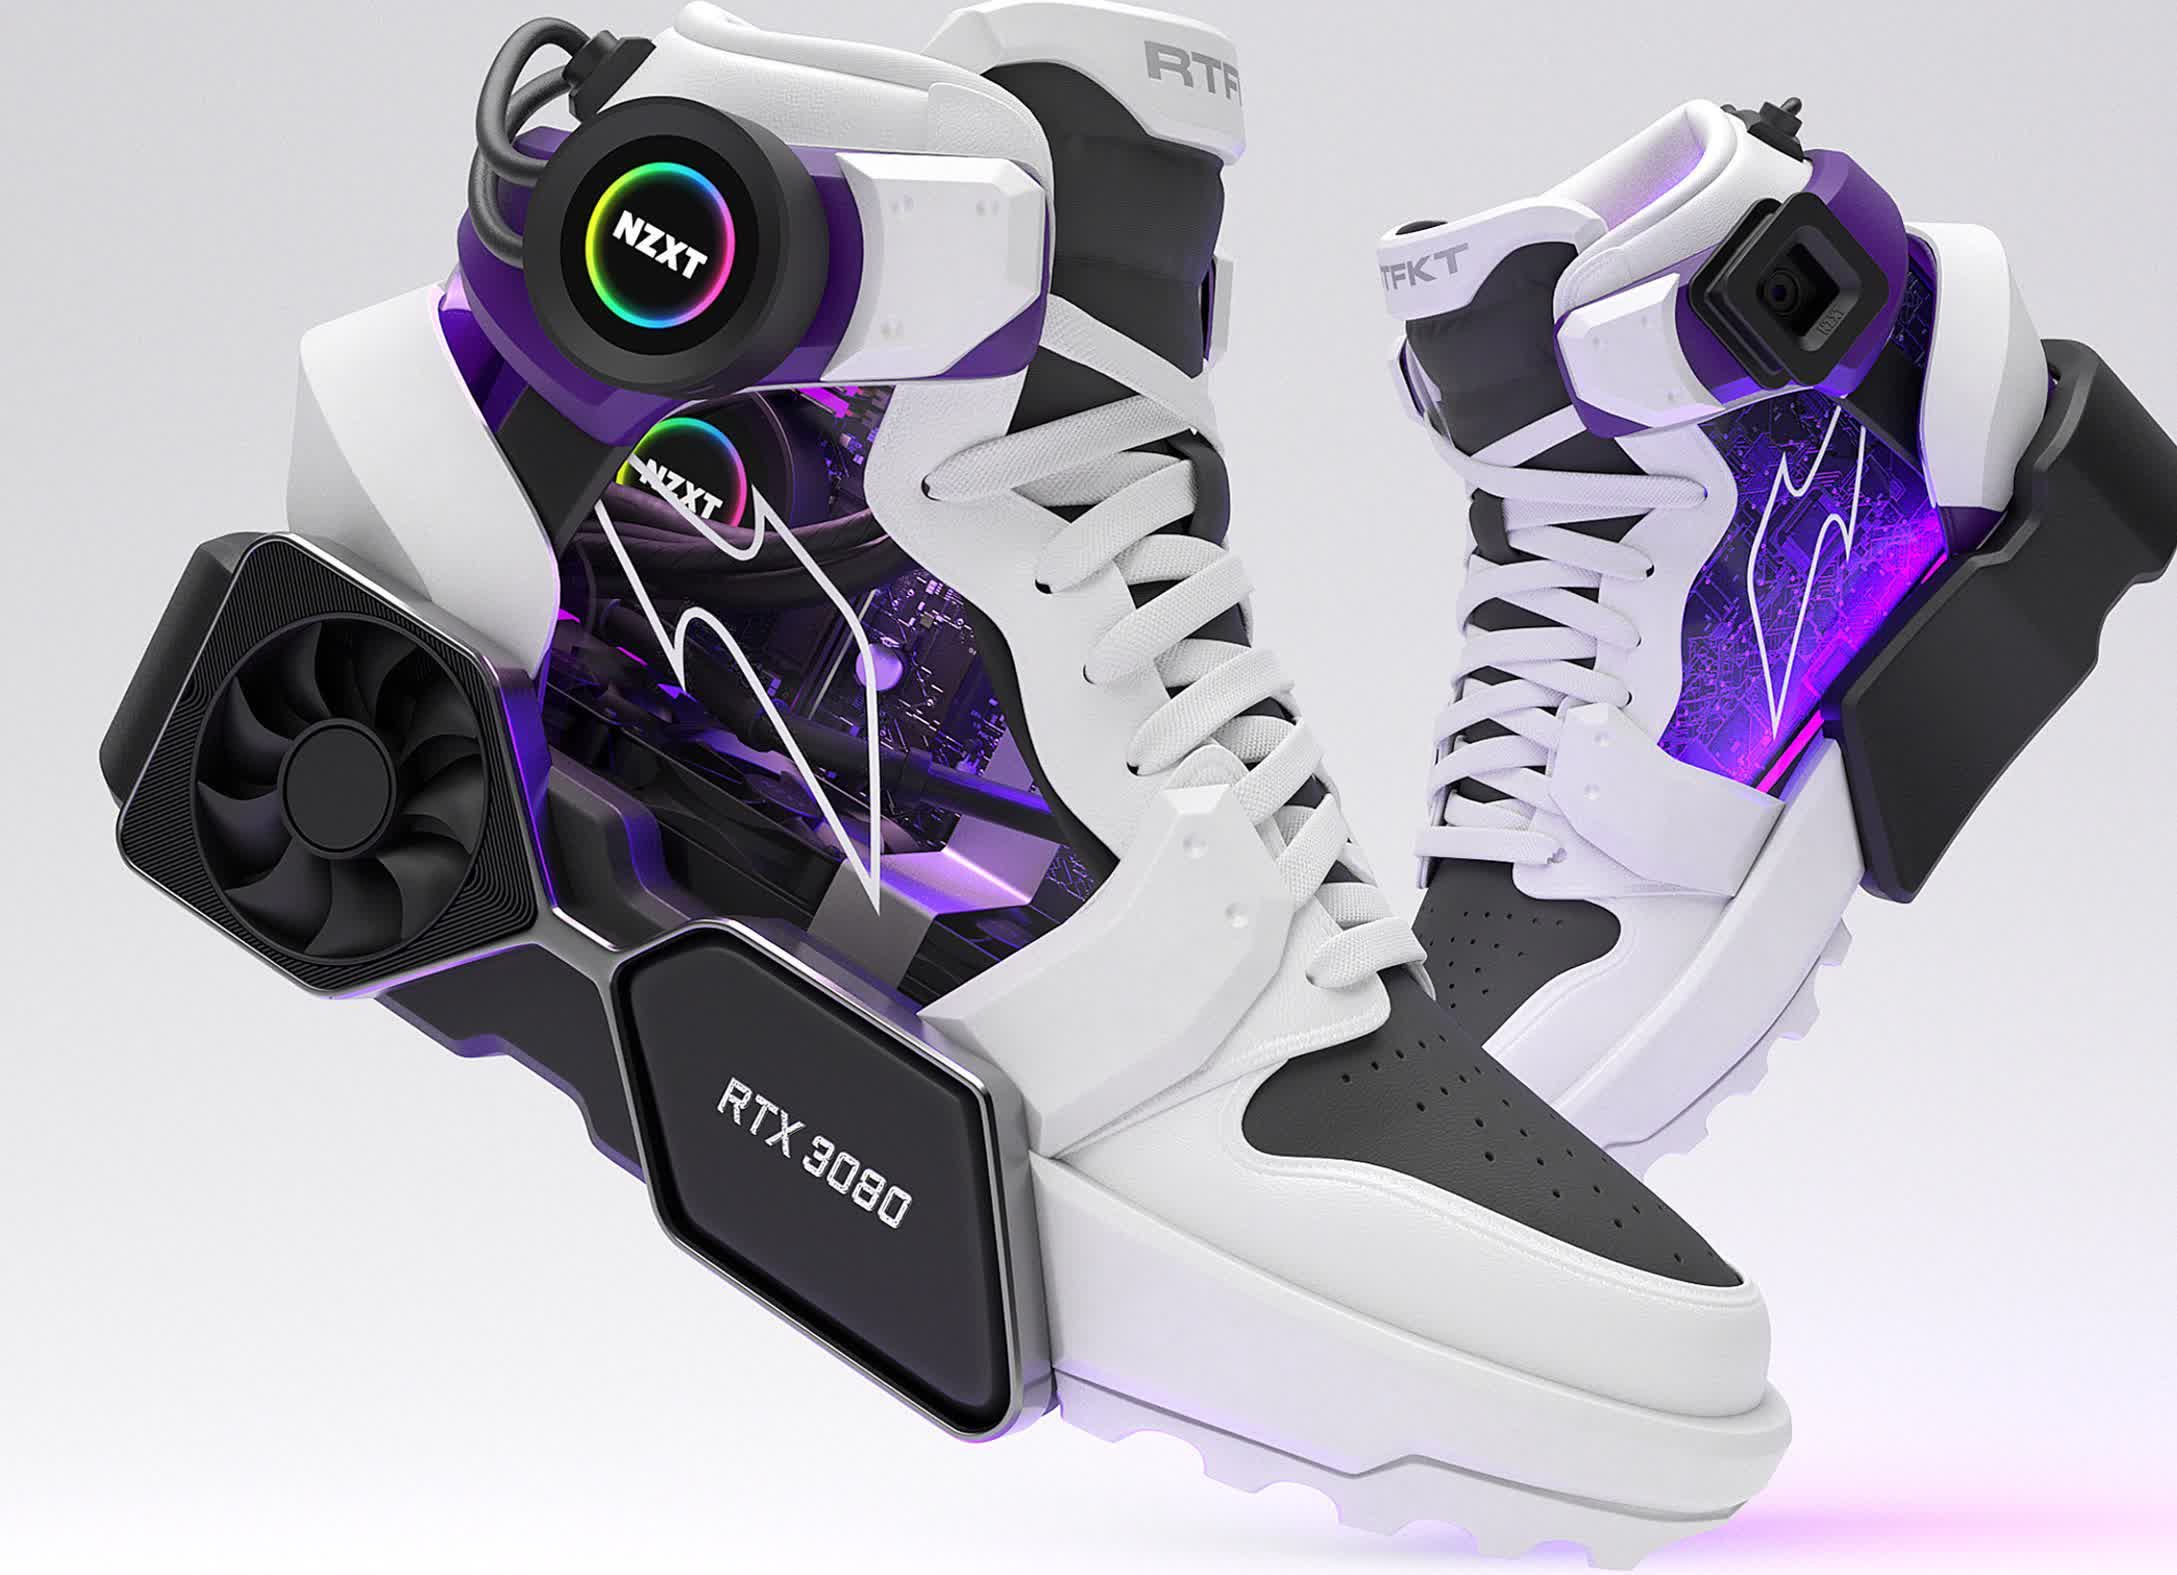 Would you buy the RTX 3080 sneakers?